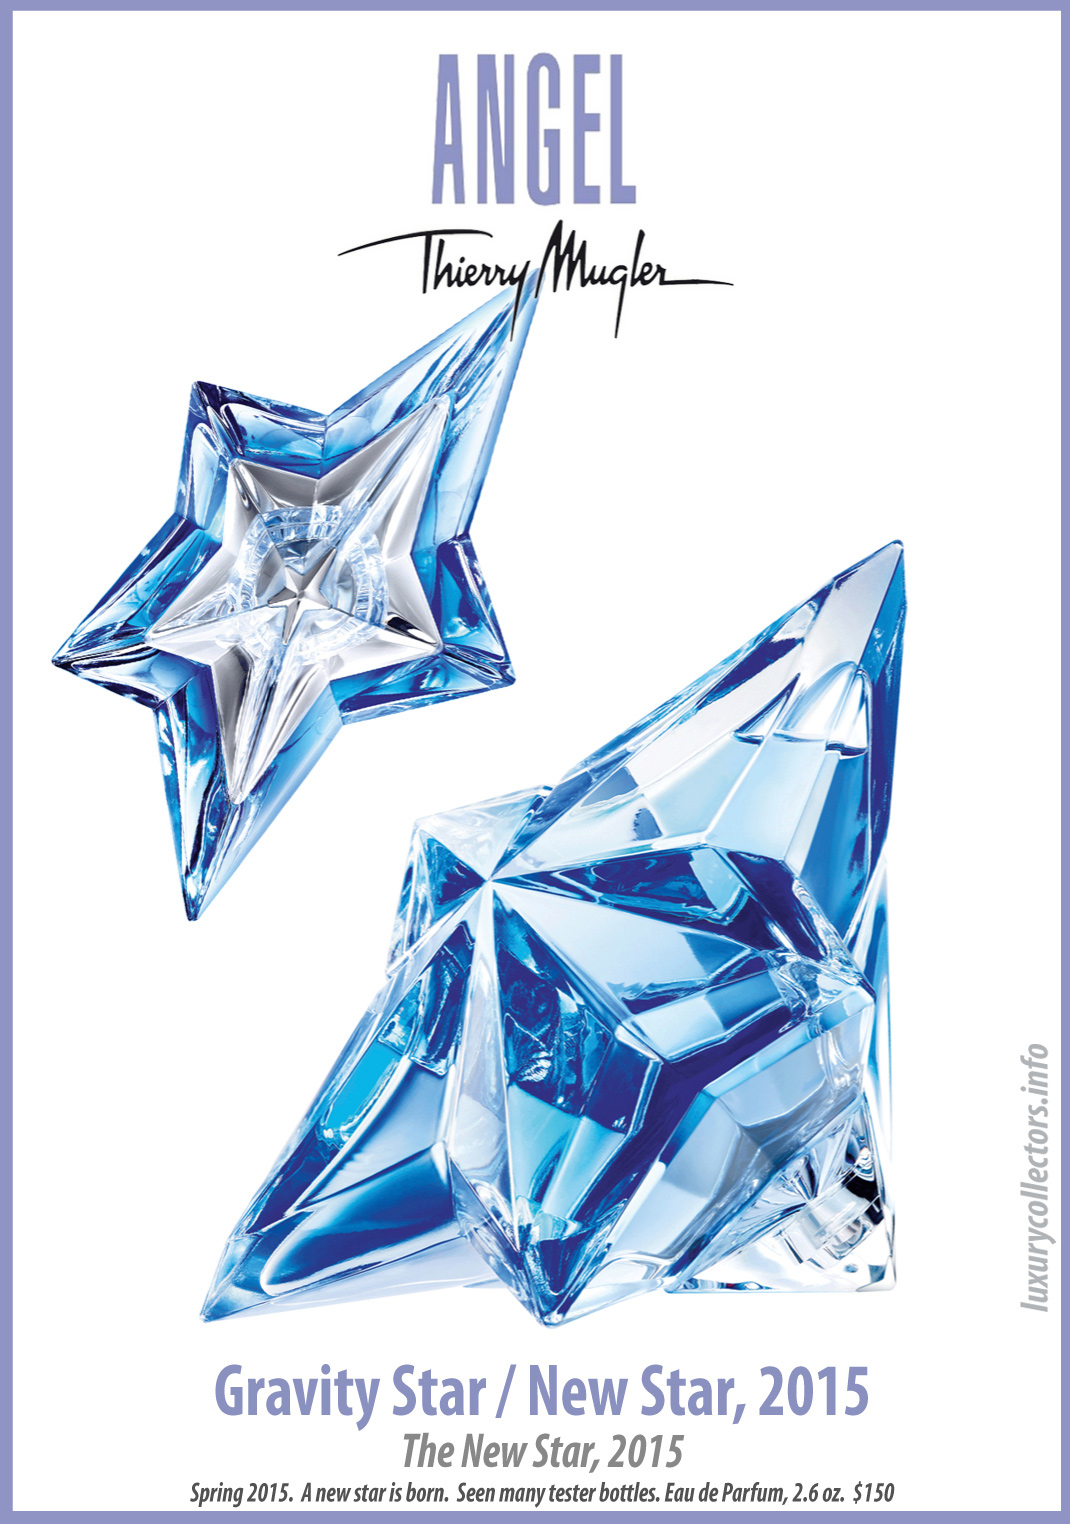 Thierry Mugler Angel Perfume Collector's Limited Edition Bottle 2015 Gravity Star / New